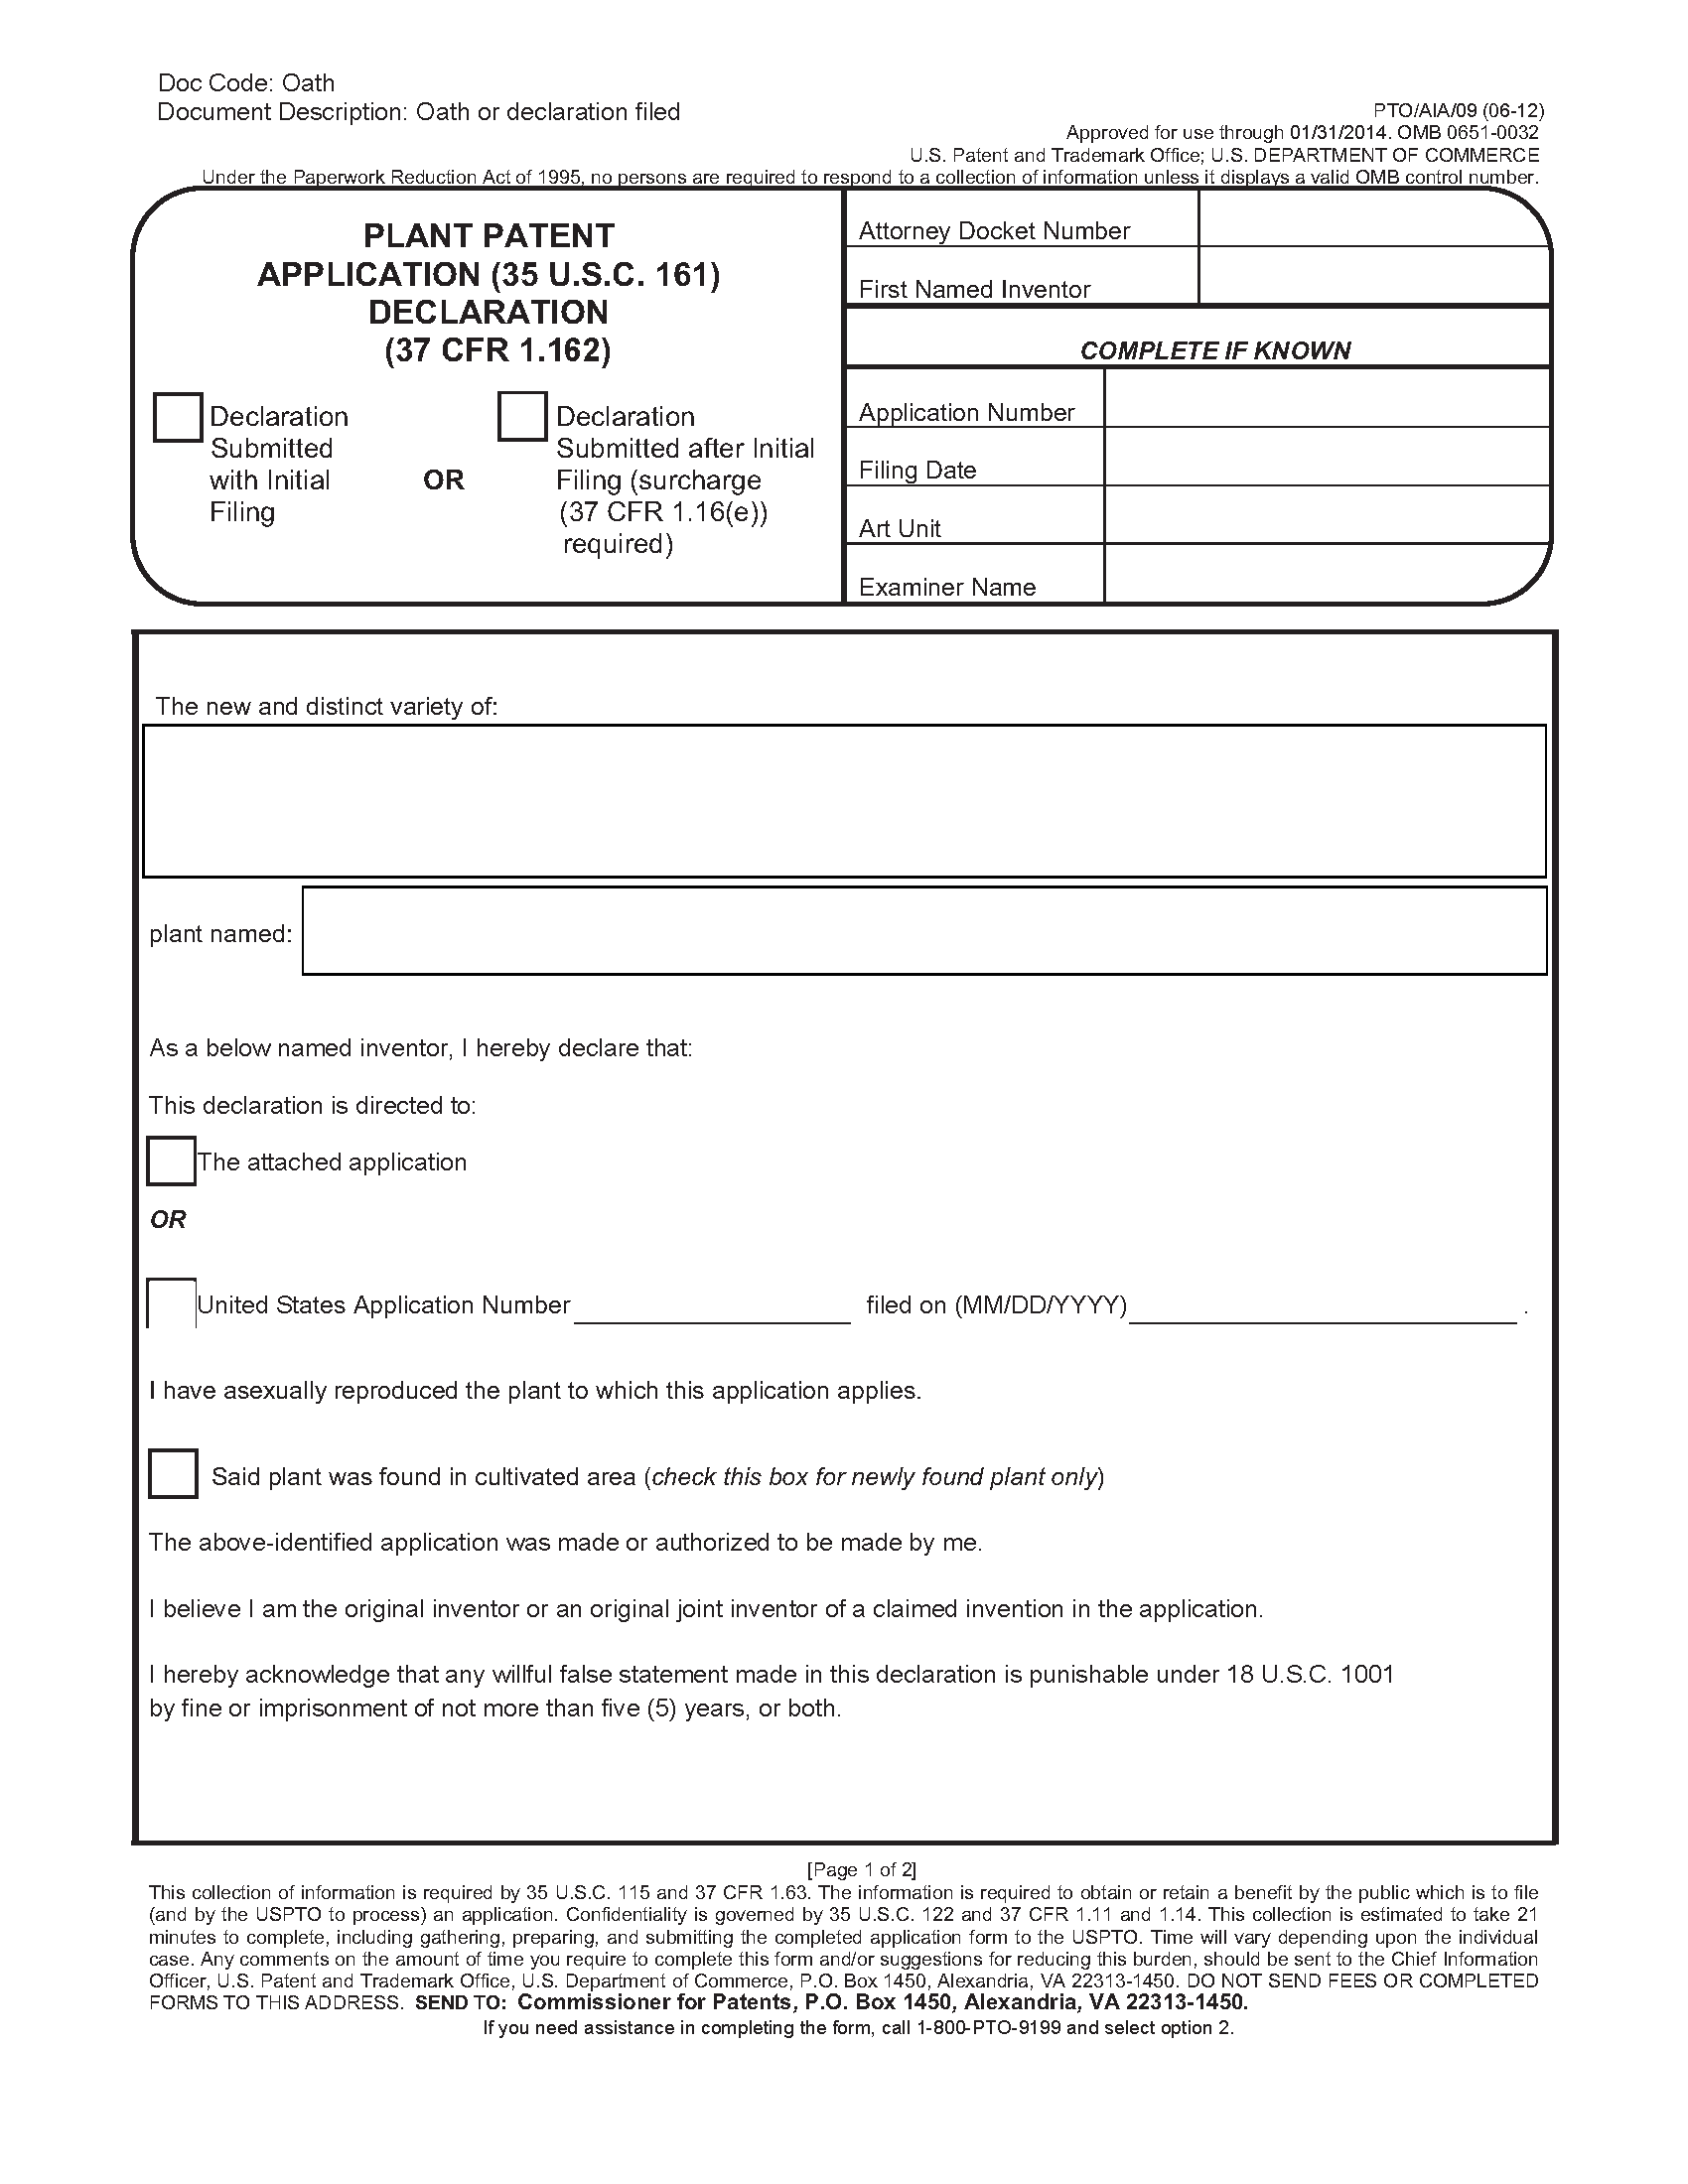 Copyright Forms by Mail